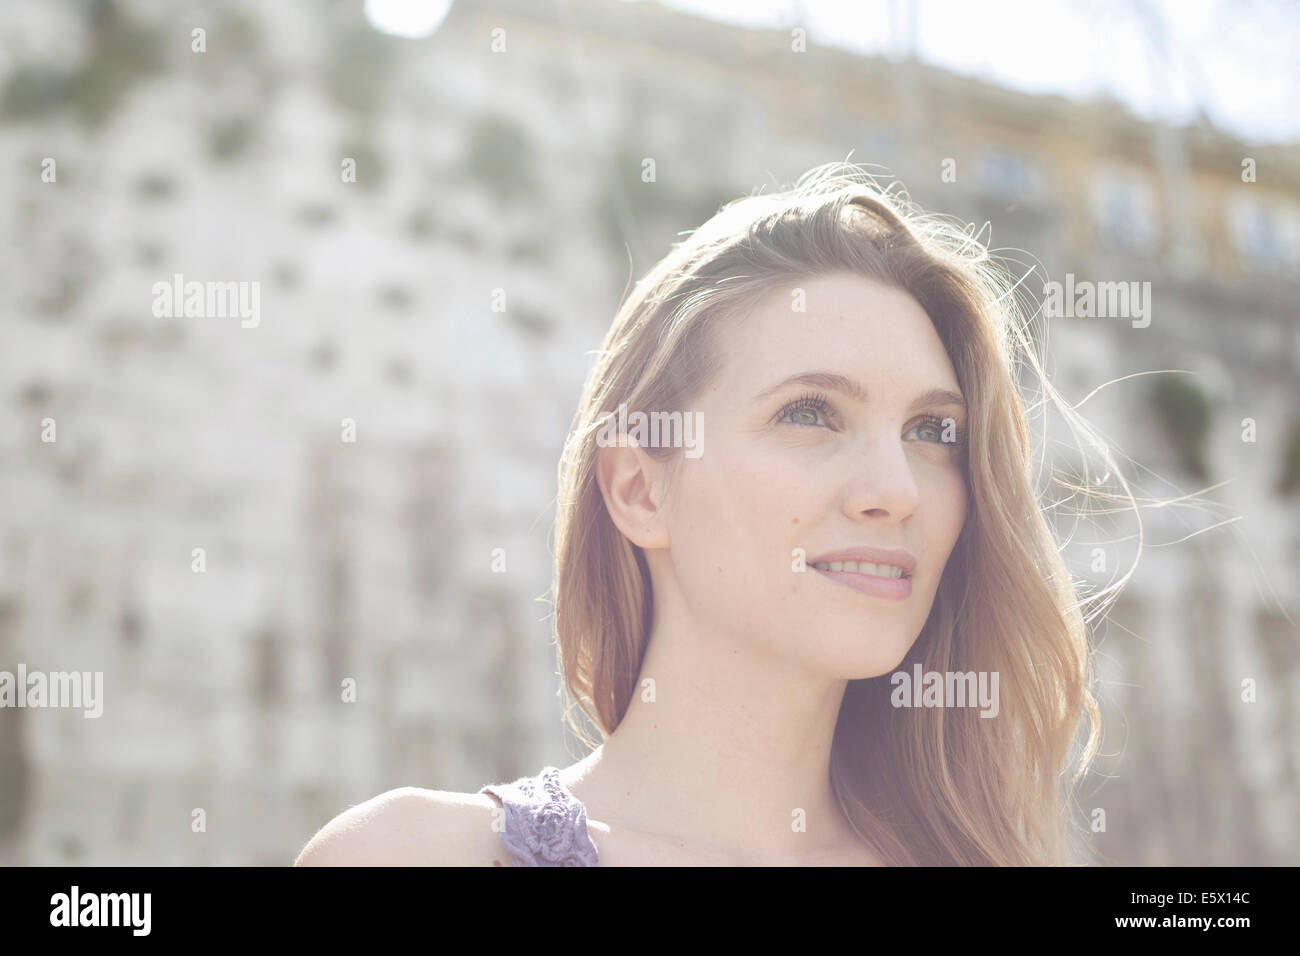 Portrait of a young woman, looking to the future - Stock Image